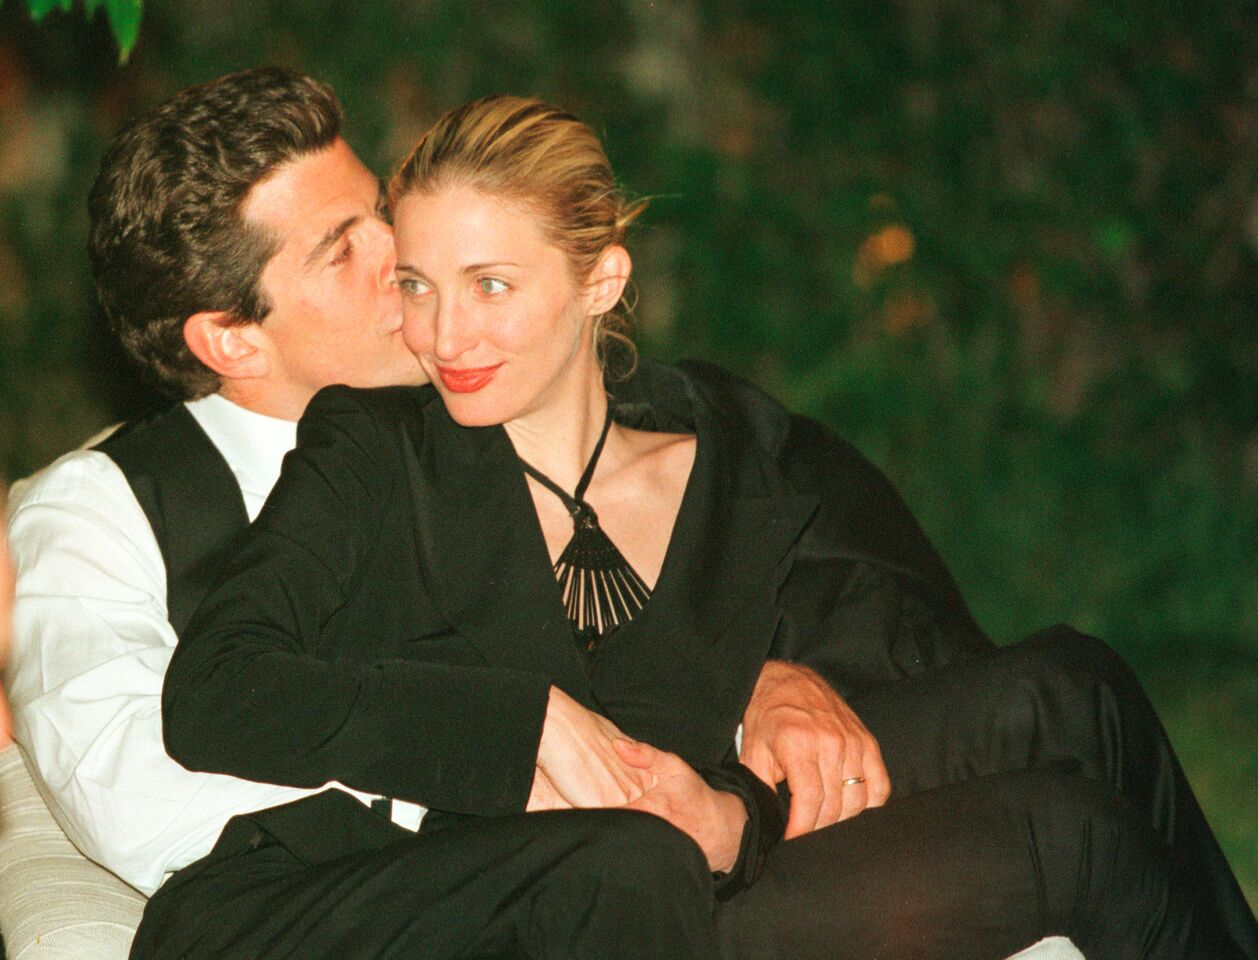 John F. Kennedy Jr. and his wife, Carolyn. | Source: Getty Images